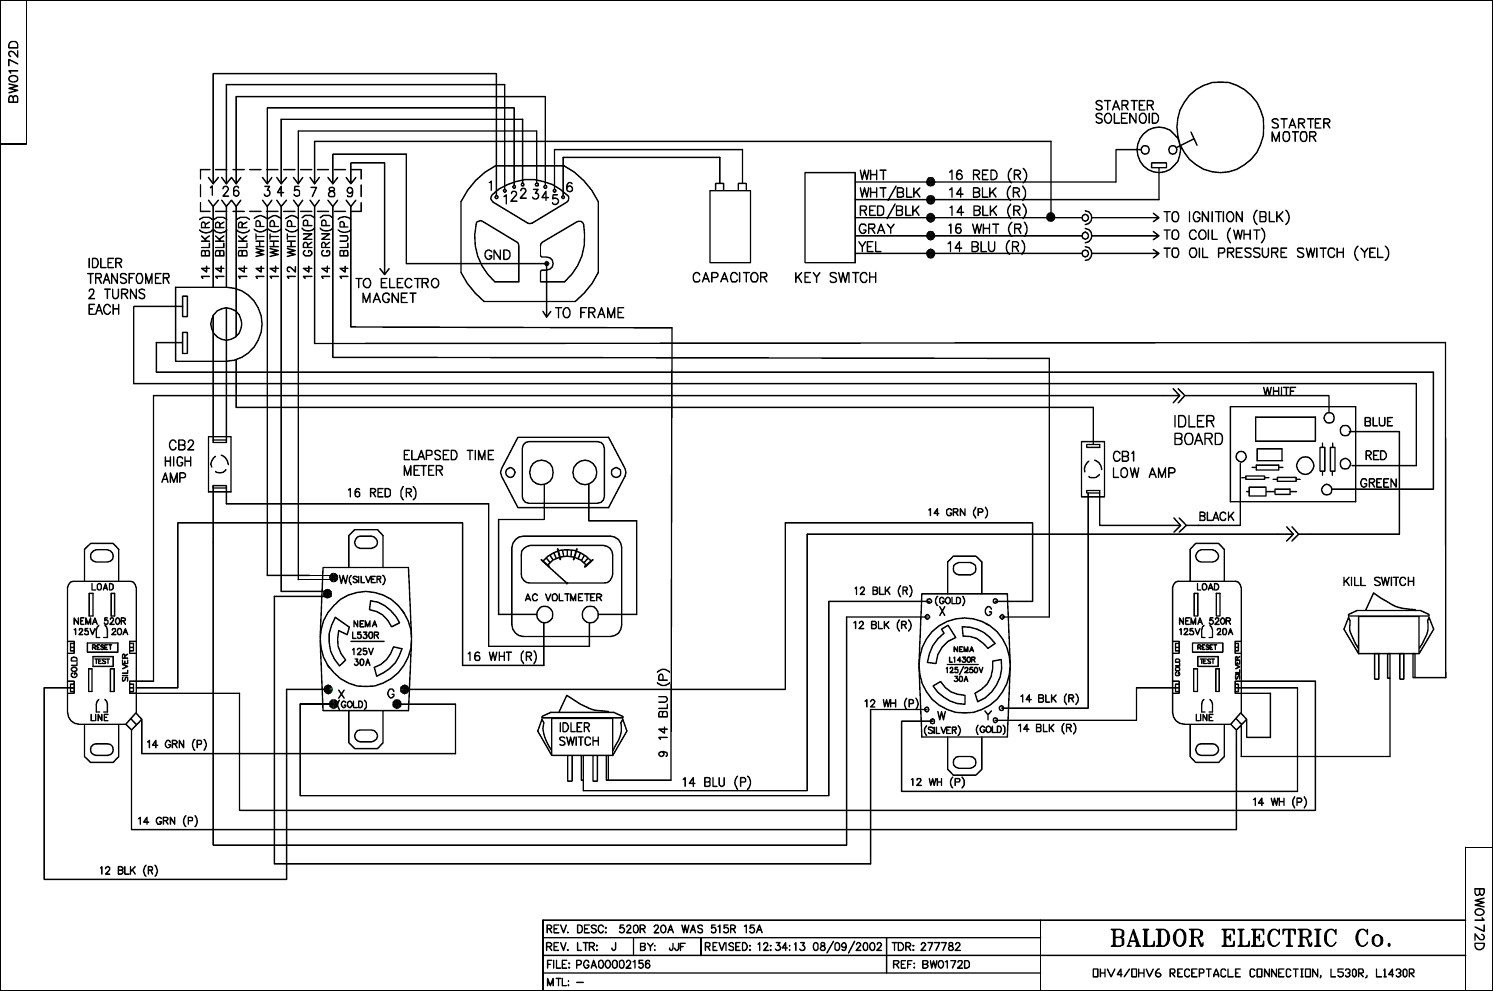 57613adc 784e 4285 92b2 5a85f0a04f5a bg1e page 30 of baldor portable generator 3kw 9kw user guide baldor generator wiring diagram at gsmportal.co